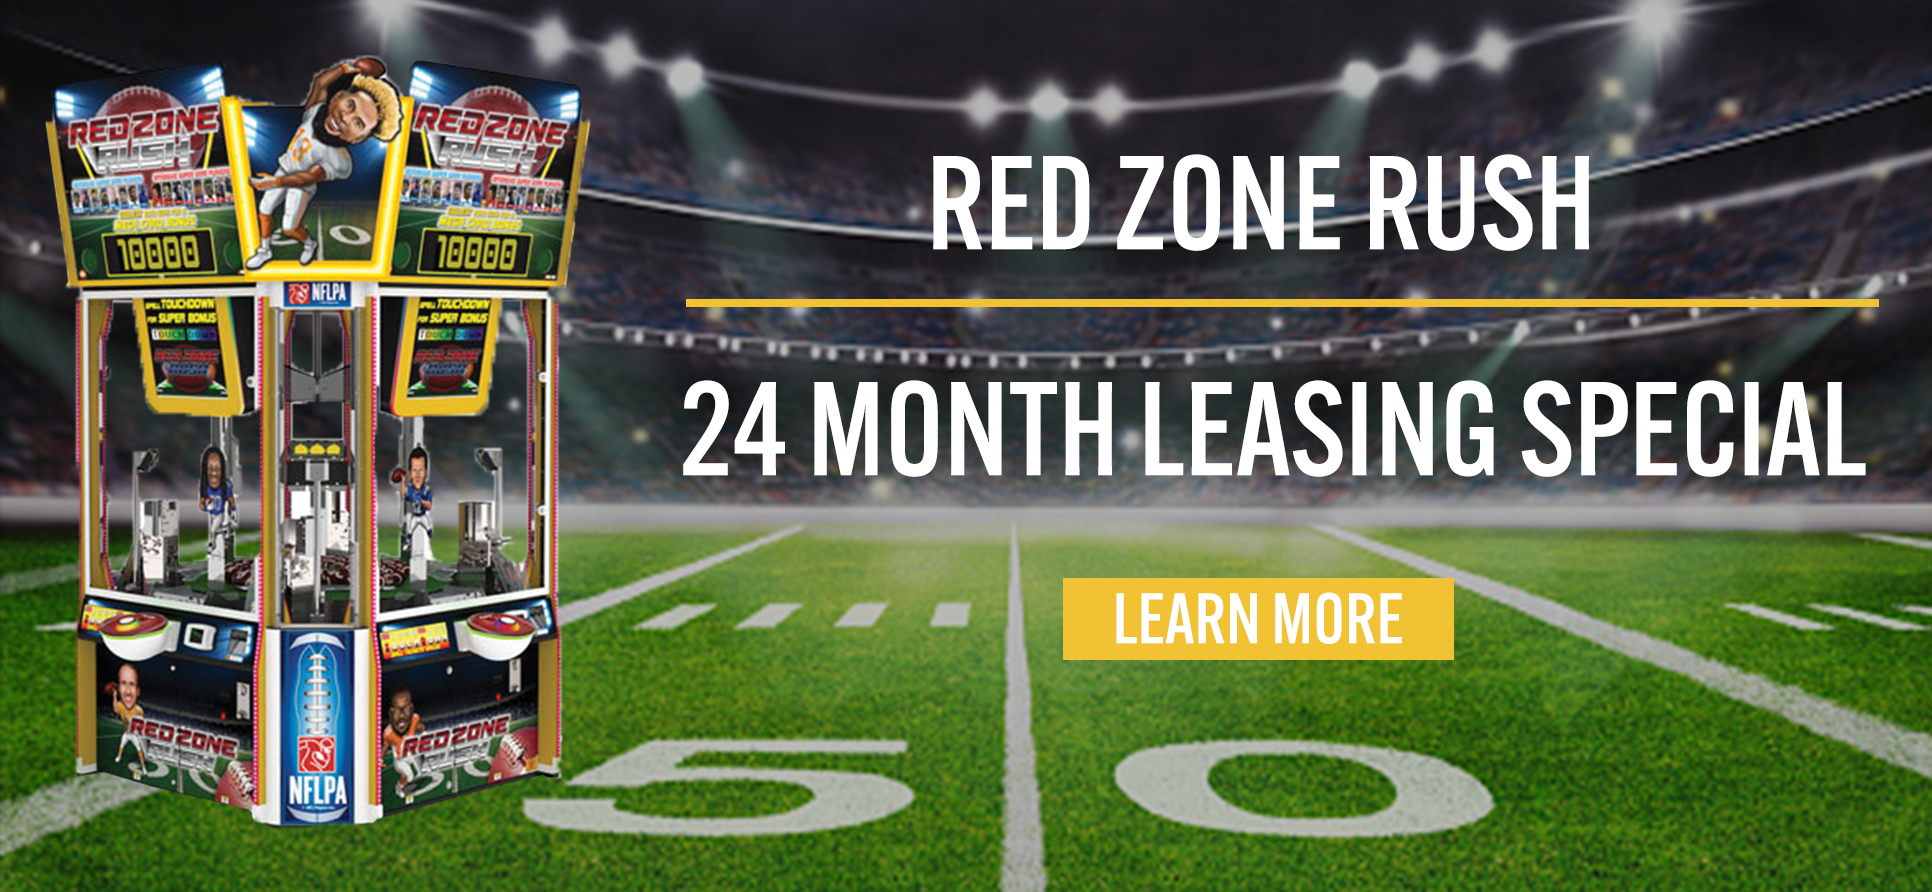 Red Zone Rush Lease